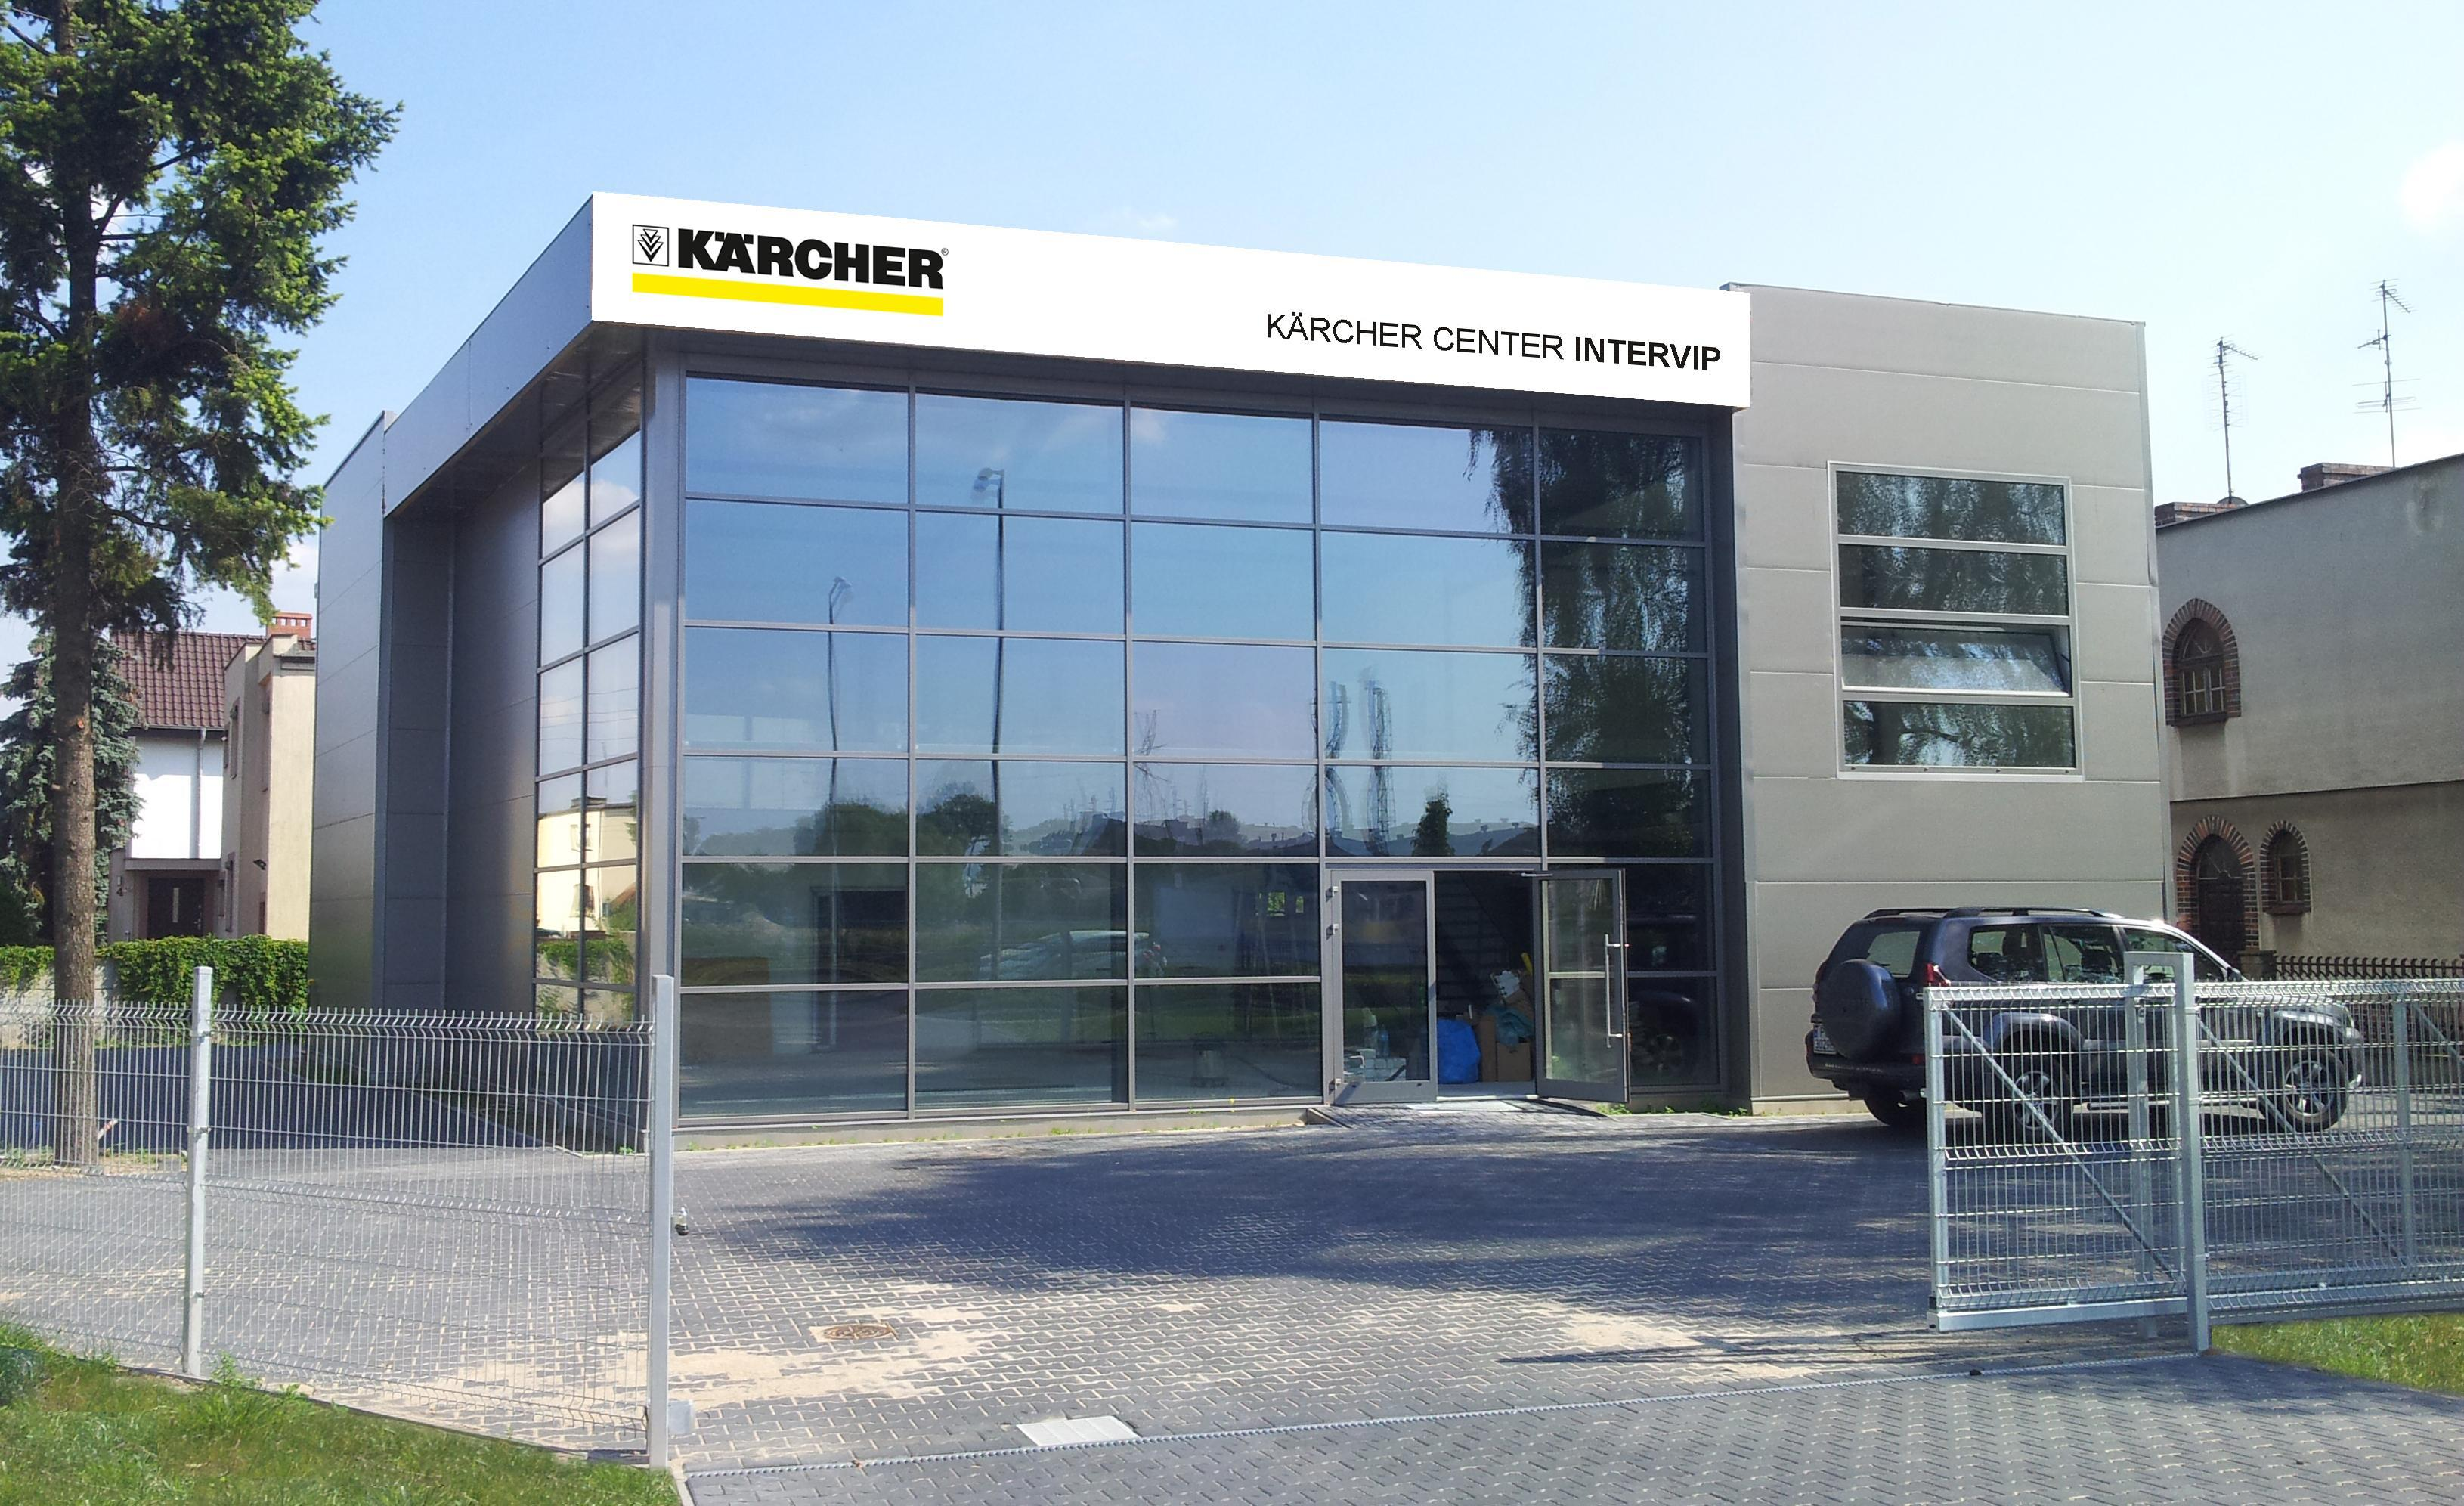 karcher center intervip